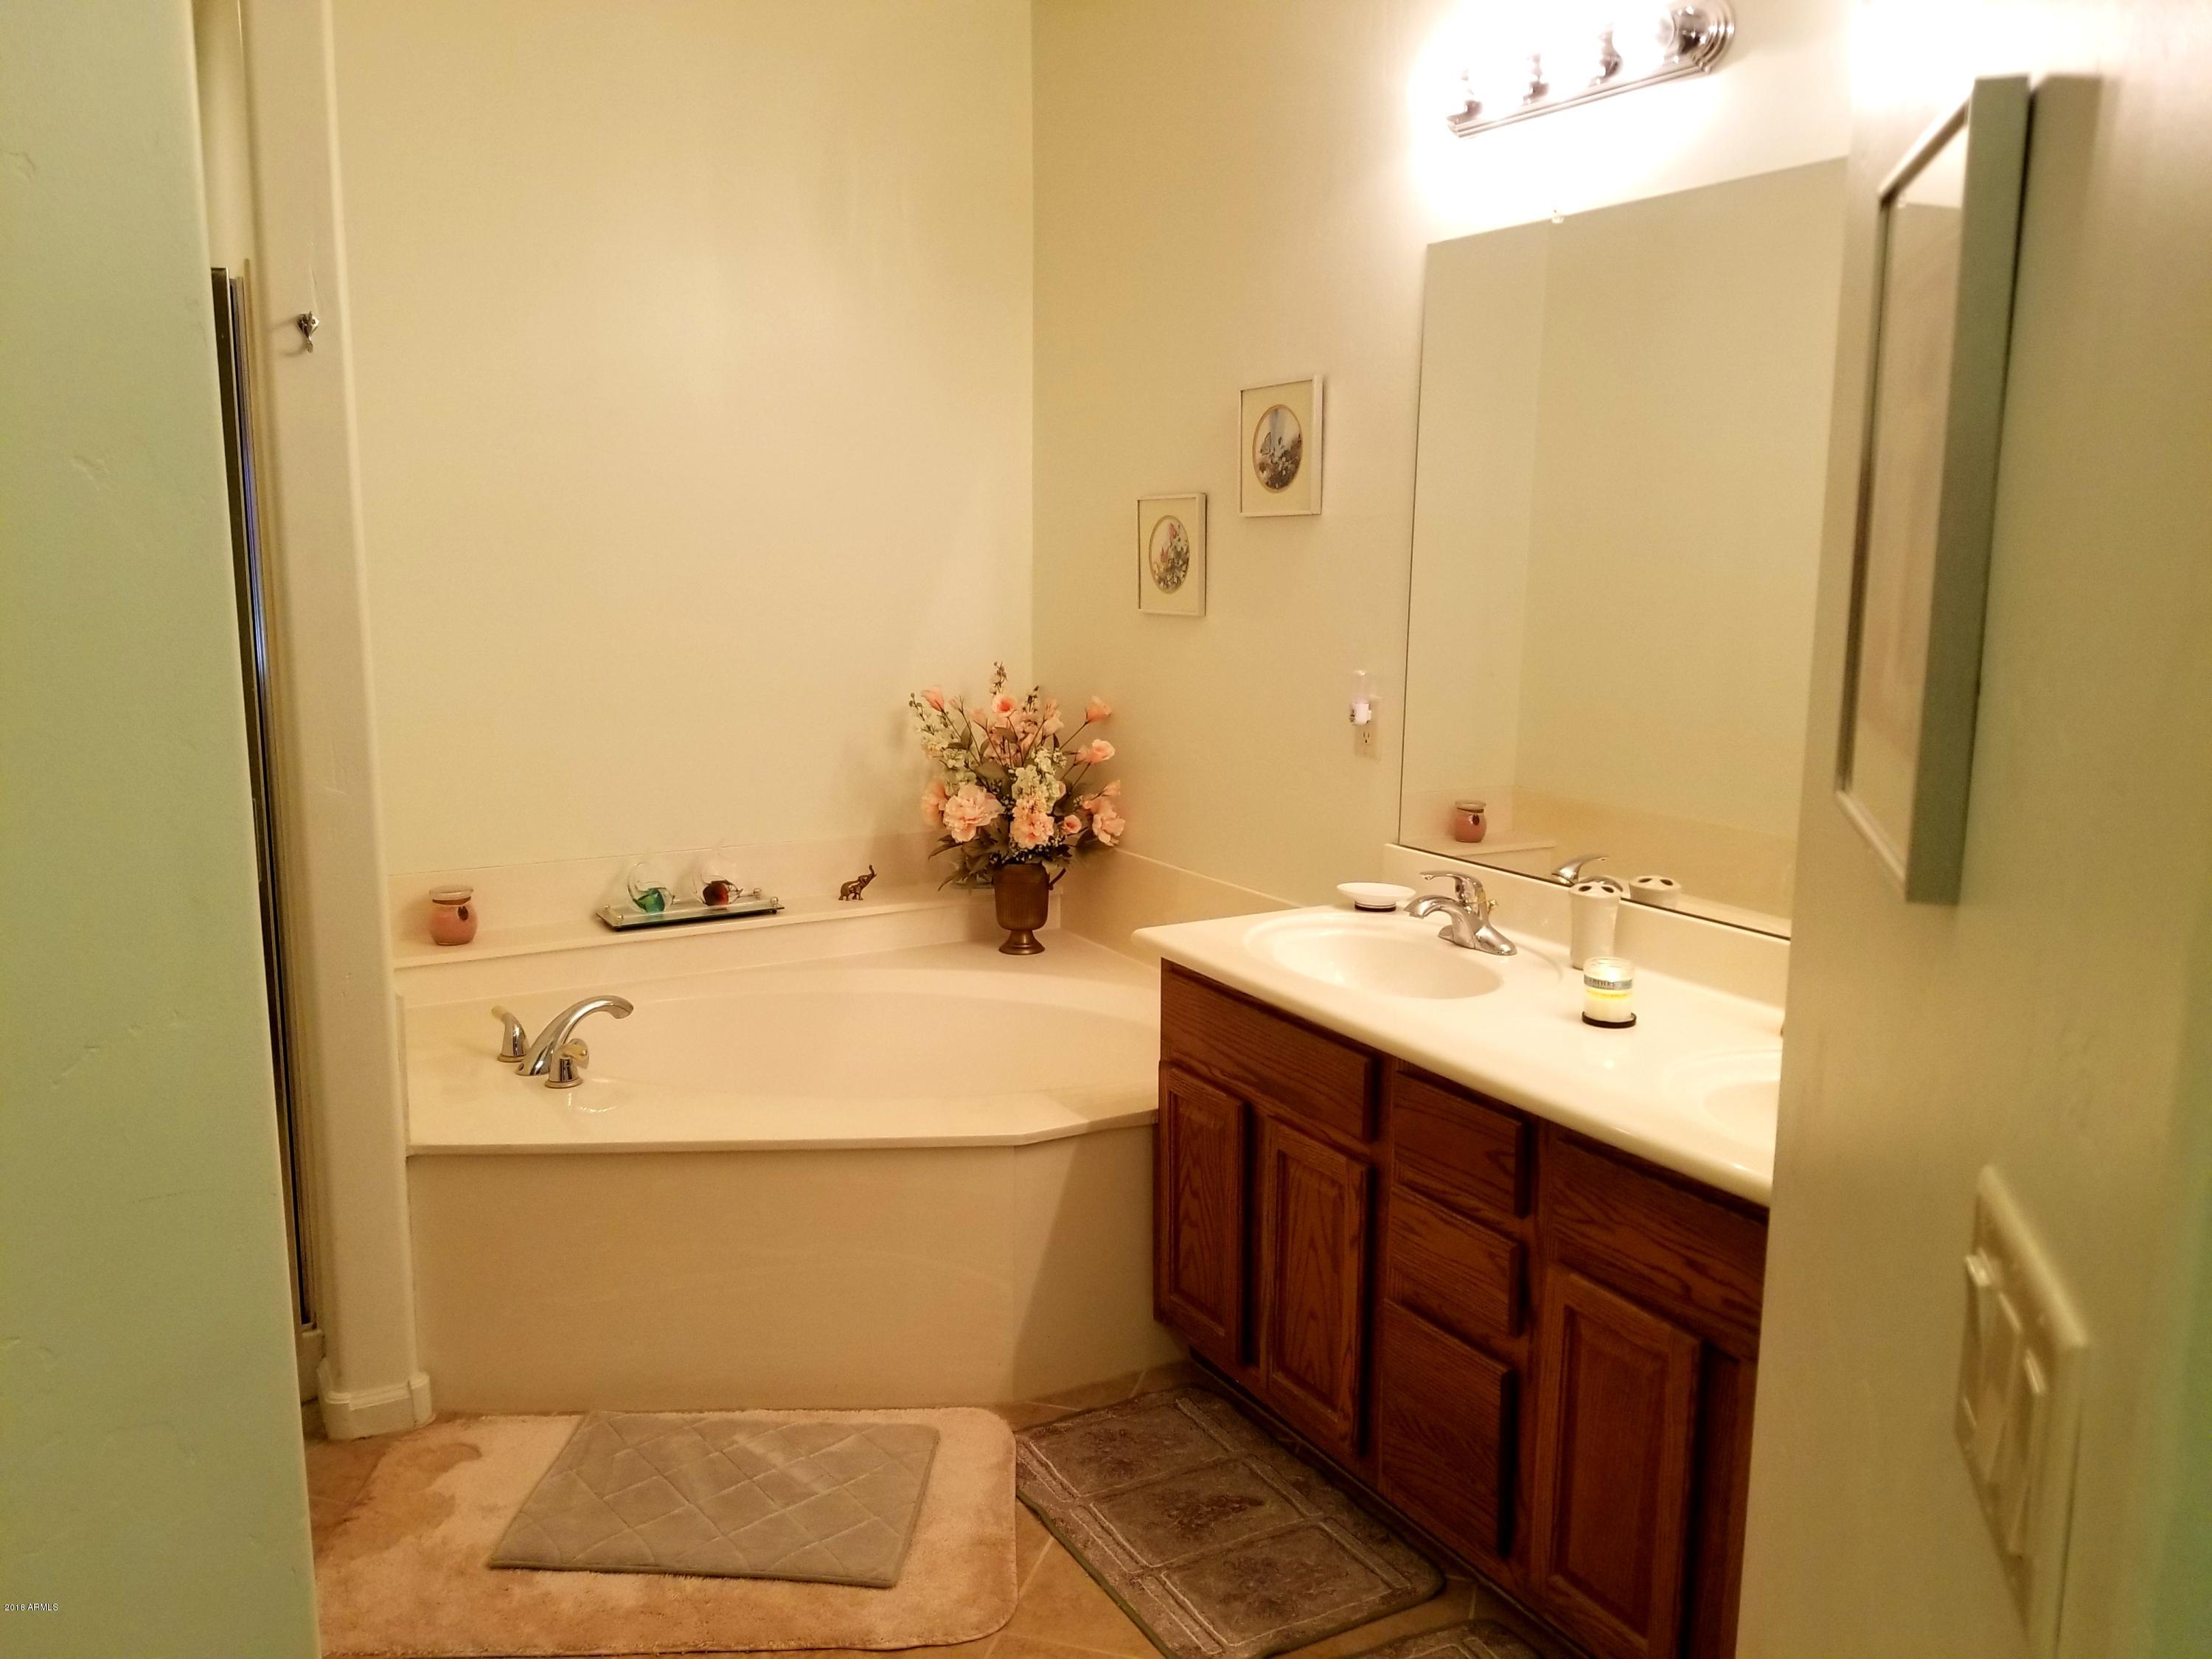 14000 N 94TH Street, Scottsdale, Arizona 85260, 2 Bedrooms Bedrooms, ,2 BathroomsBathrooms,Rental,For Rent,14000 N 94TH Street,3,6121887